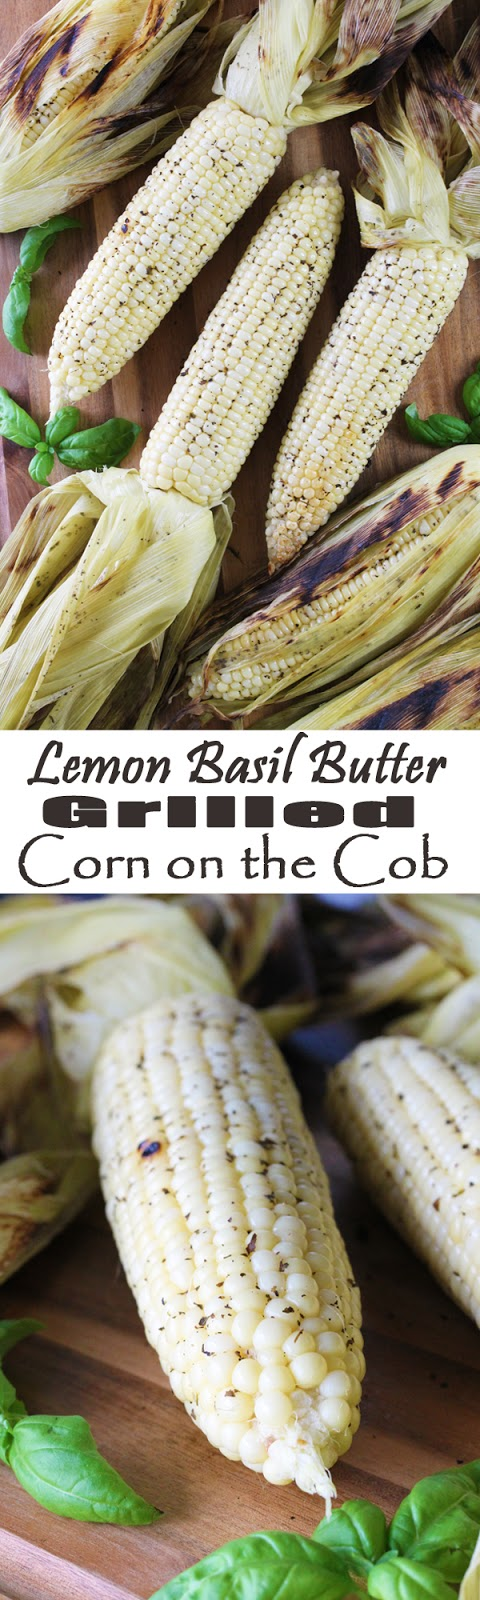 Lemon-Basil Butter Grilled Corn on the Cob